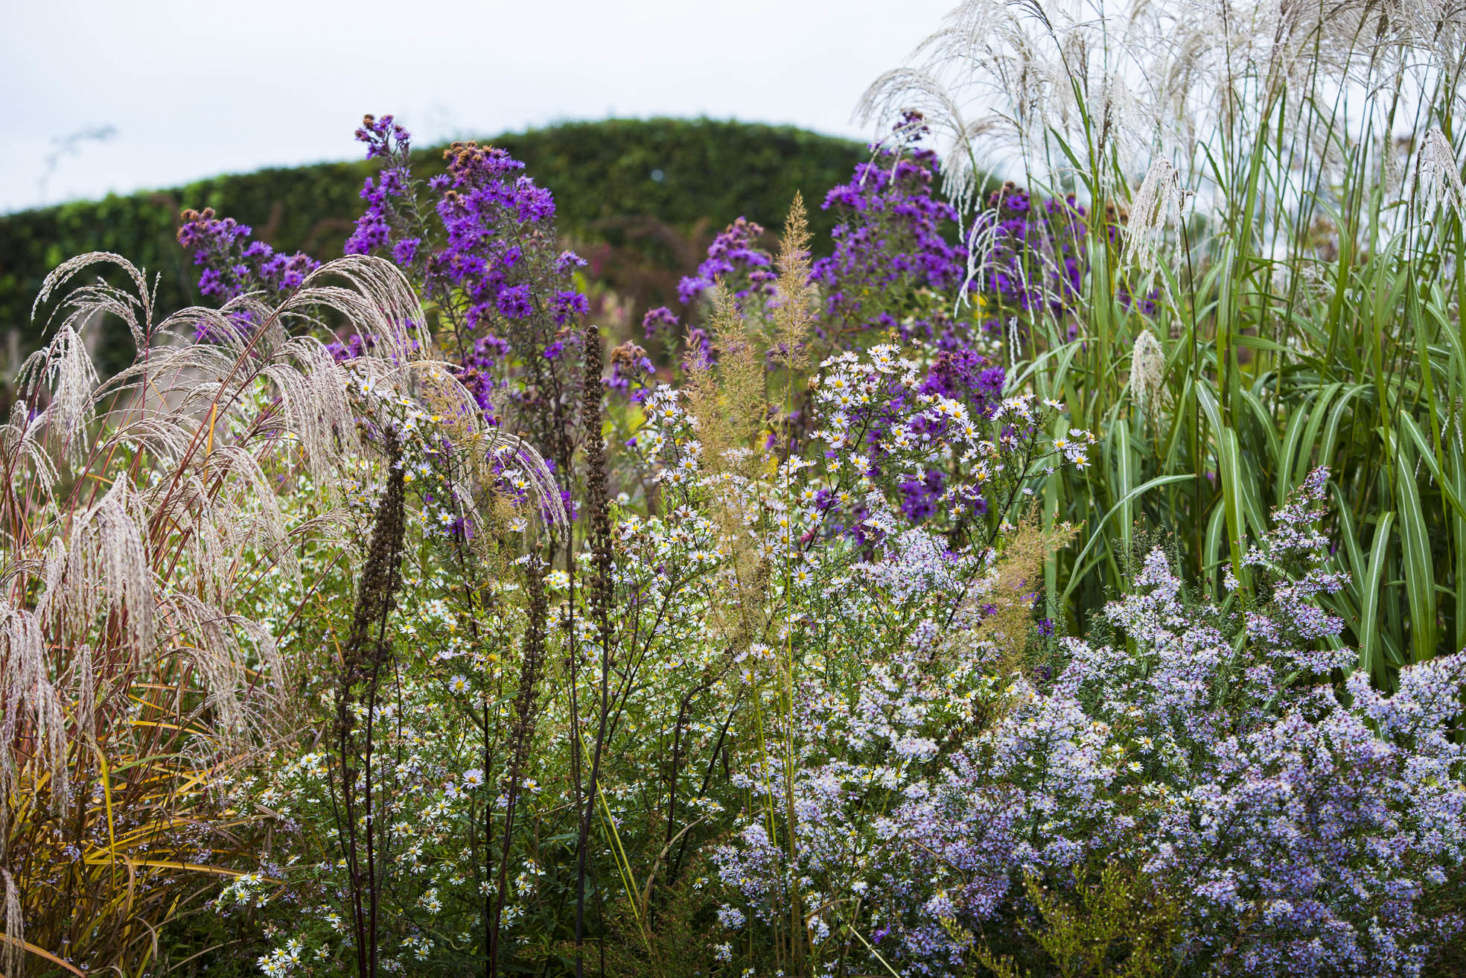 The Plume, or Feather Garden. Herbaceous perennials and grasses are backed up by a wavy hedge.